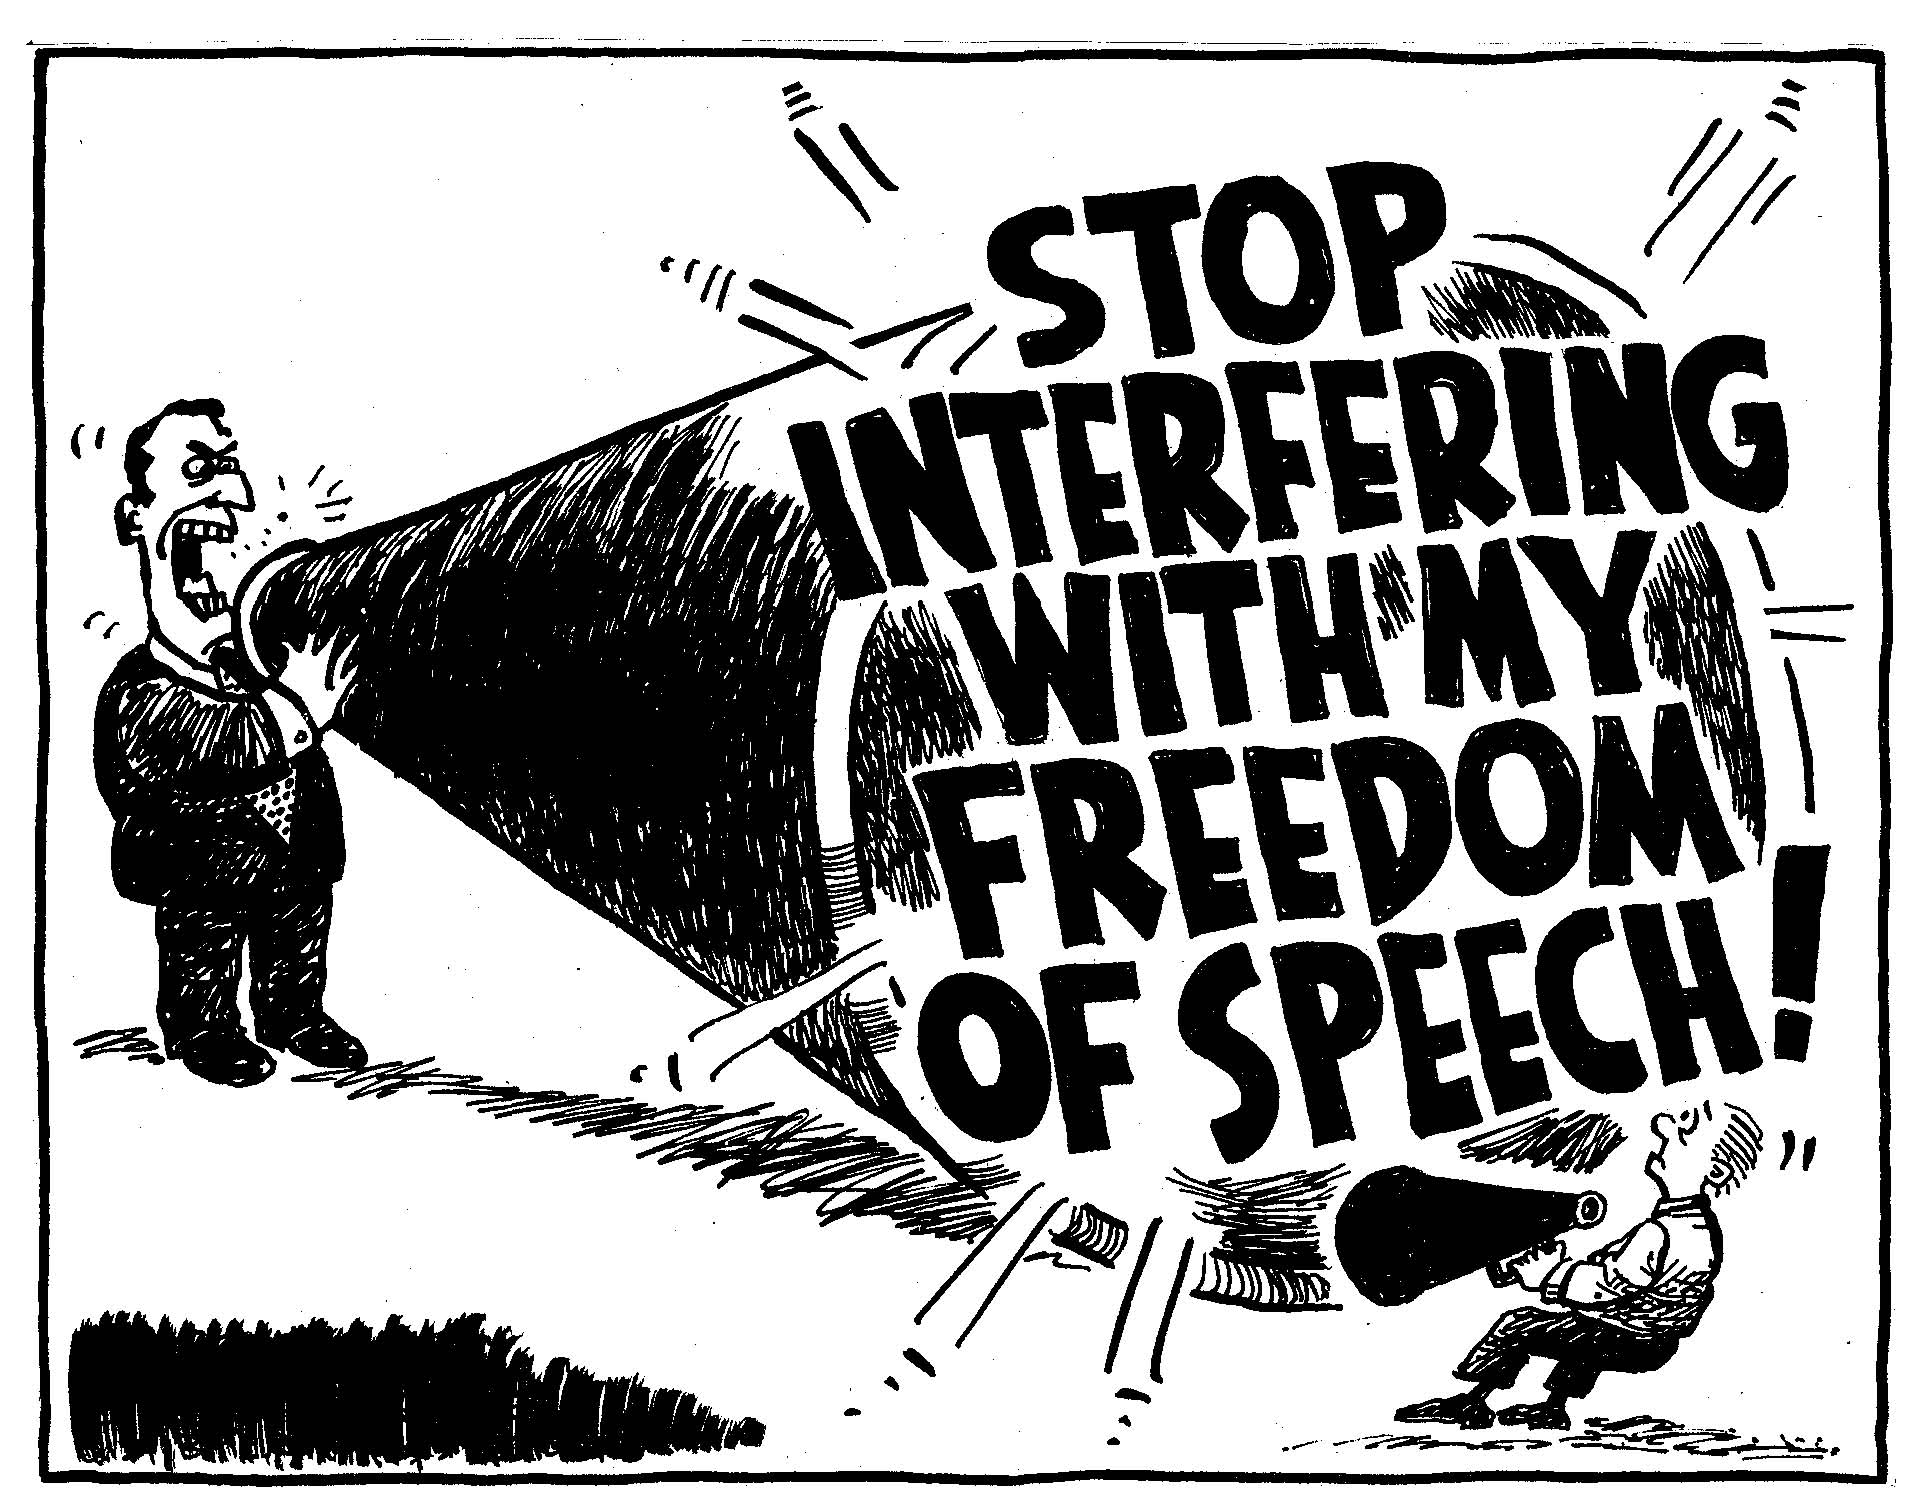 An analysis of the government censorship and the freedom to express ideas on the internet